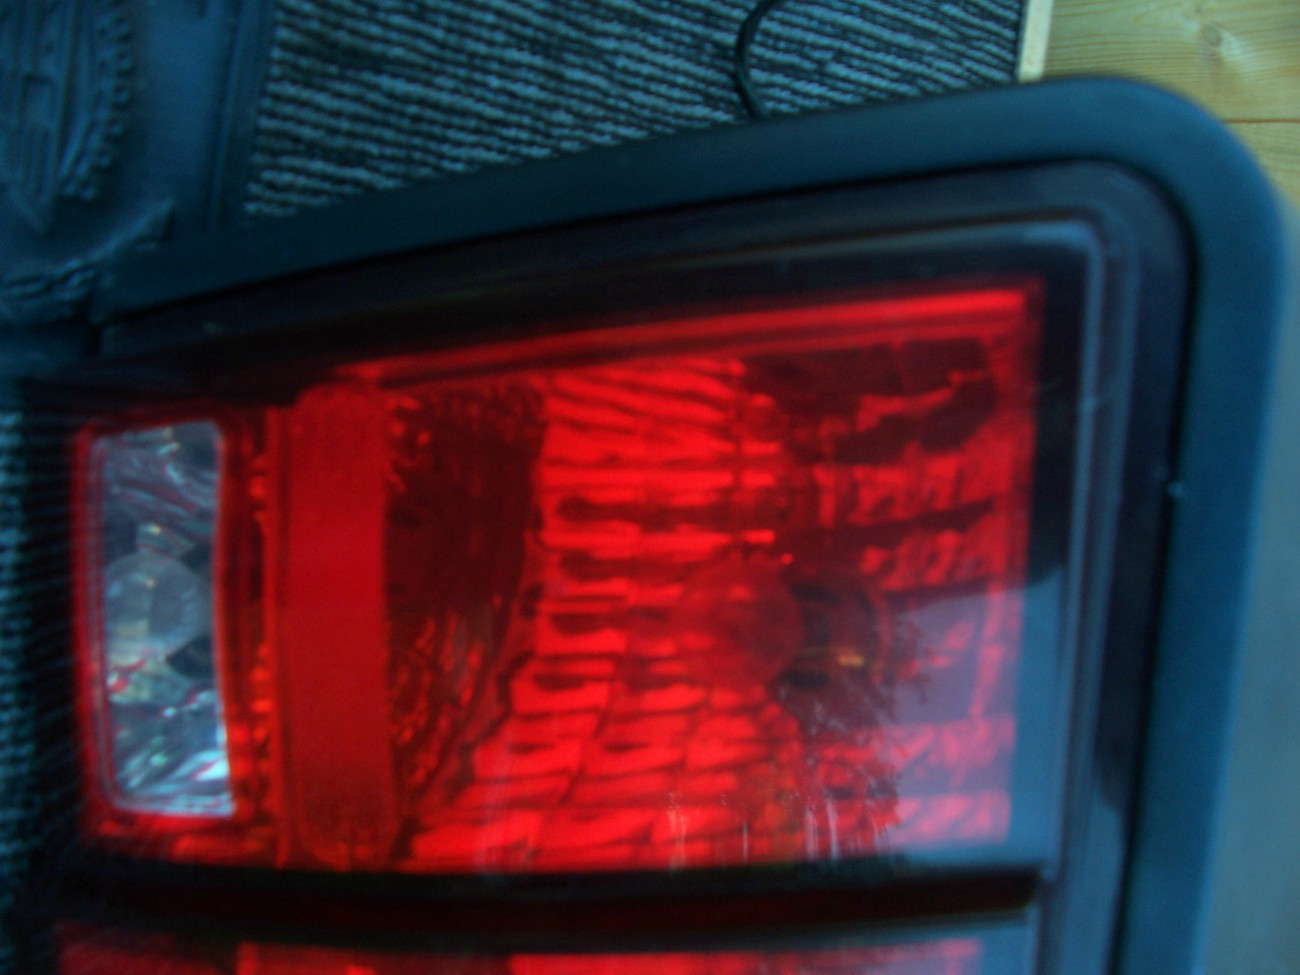 2004 2003 2002 01 2000 1999 MUSTANG RIGHT TAILLIGHT OEM USED ORIGINAL FORD PART